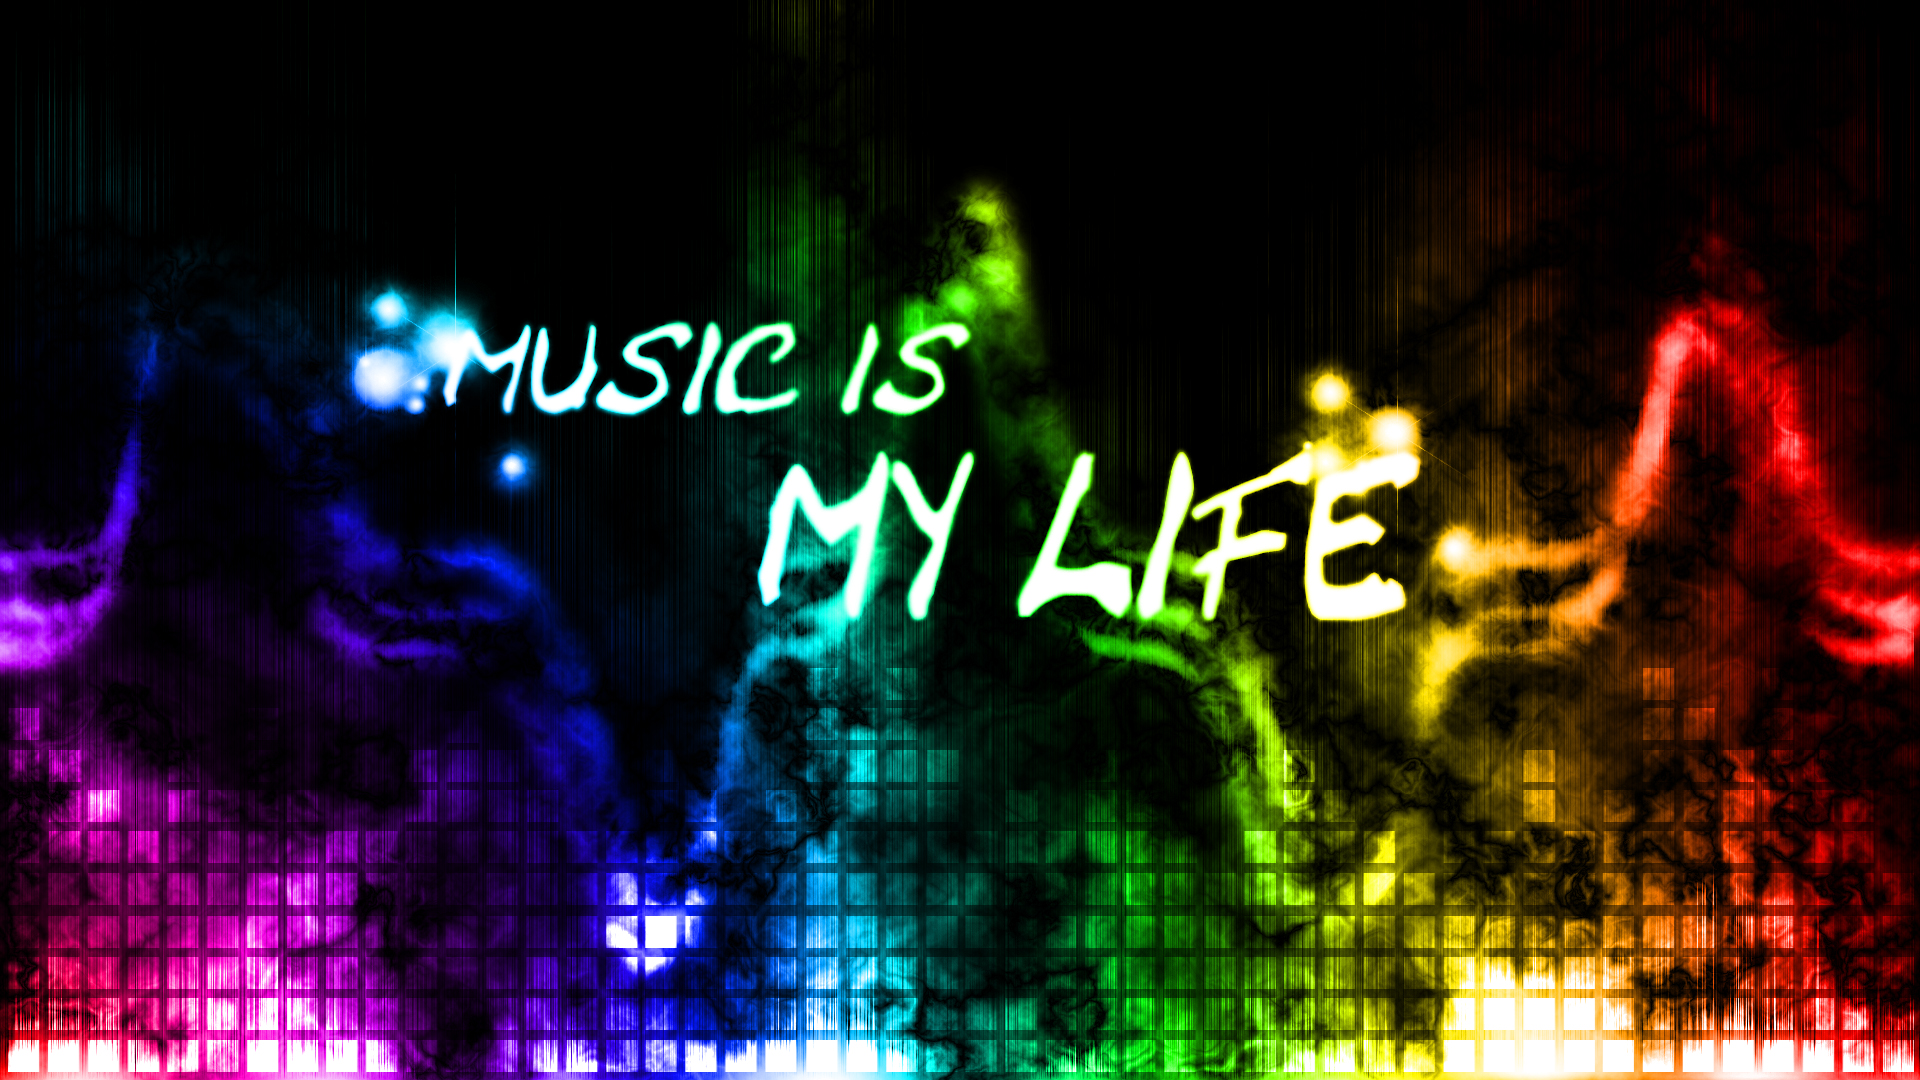 Good Wallpaper Music Purple - music_is_my_life__wallpaper__by_hardii-d7ysb30  Trends_651046.jpg